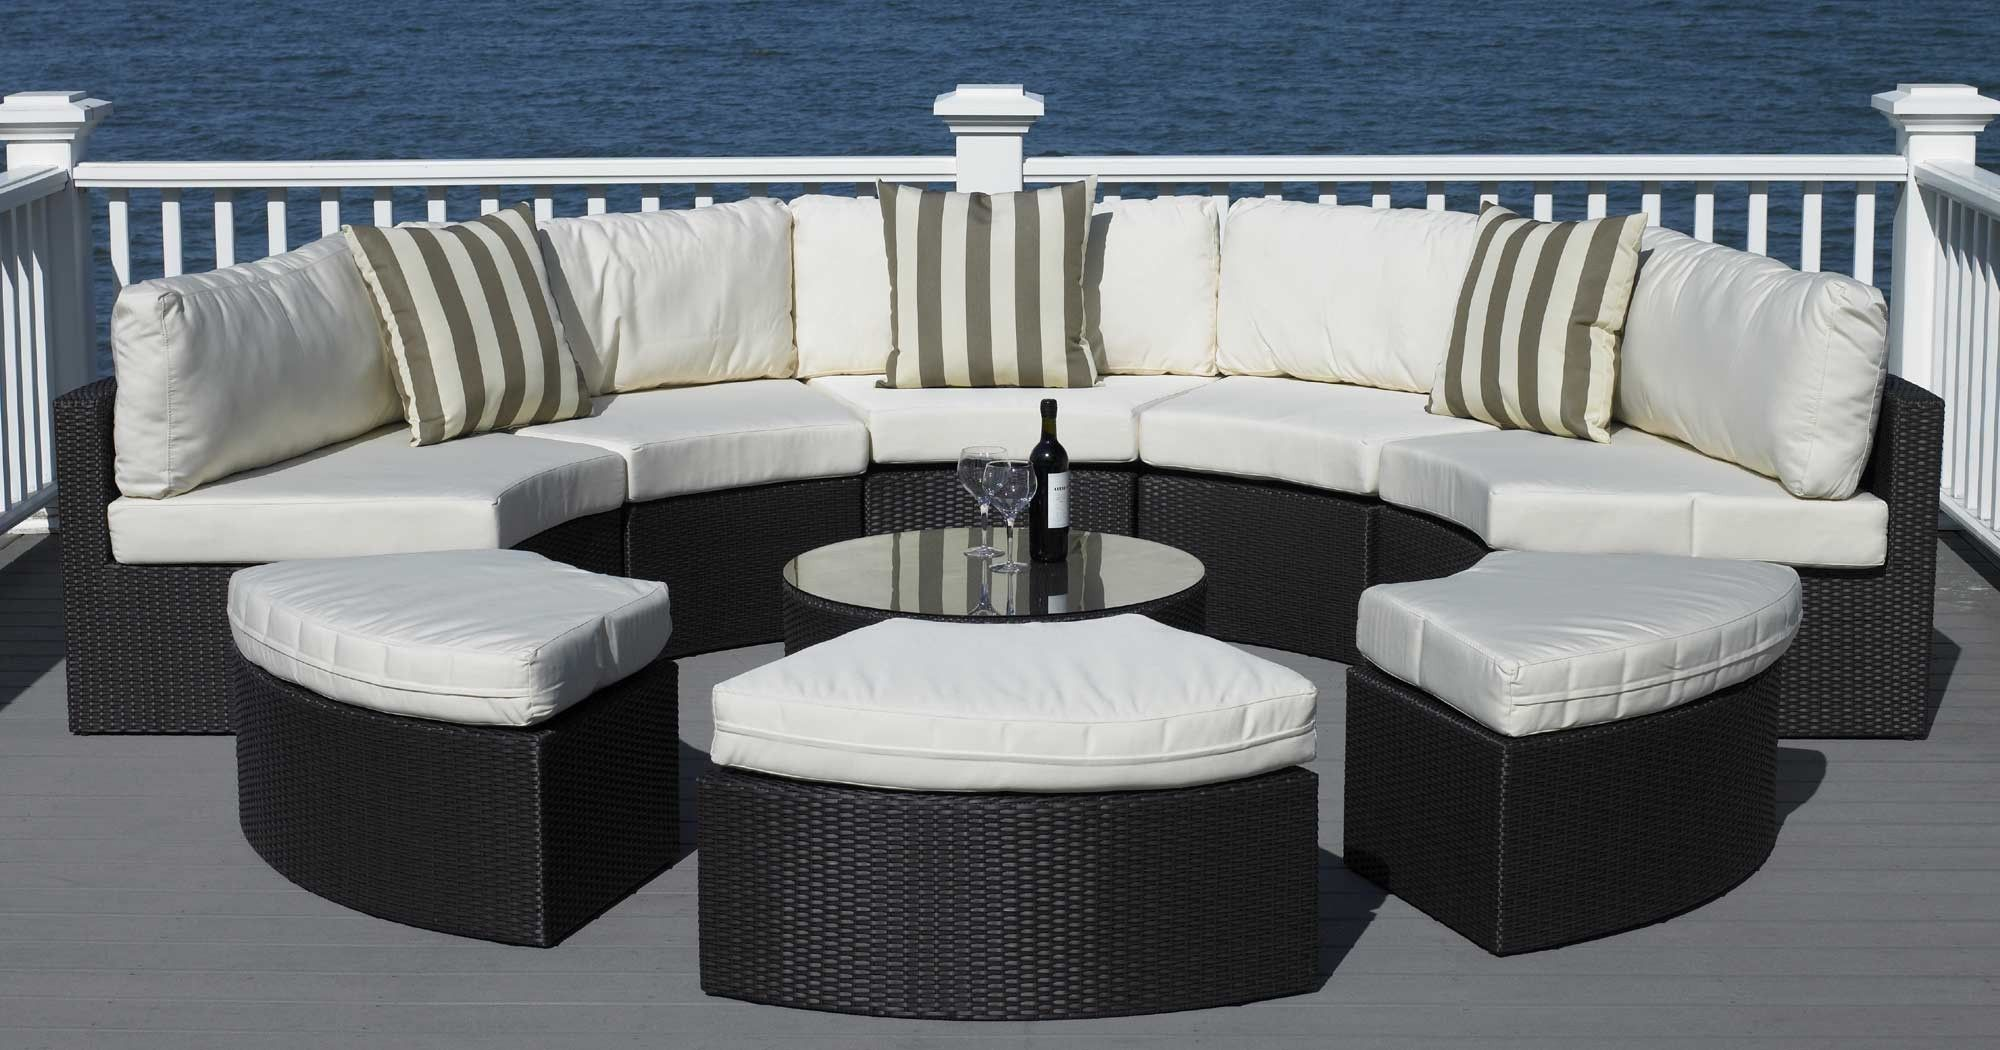 Furniture Accessories Cool Round Sofa Design And Antique Curved Sectional So Outdoor Wicker Furniture Contemporary Outdoor Furniture Outdoor Furniture Design